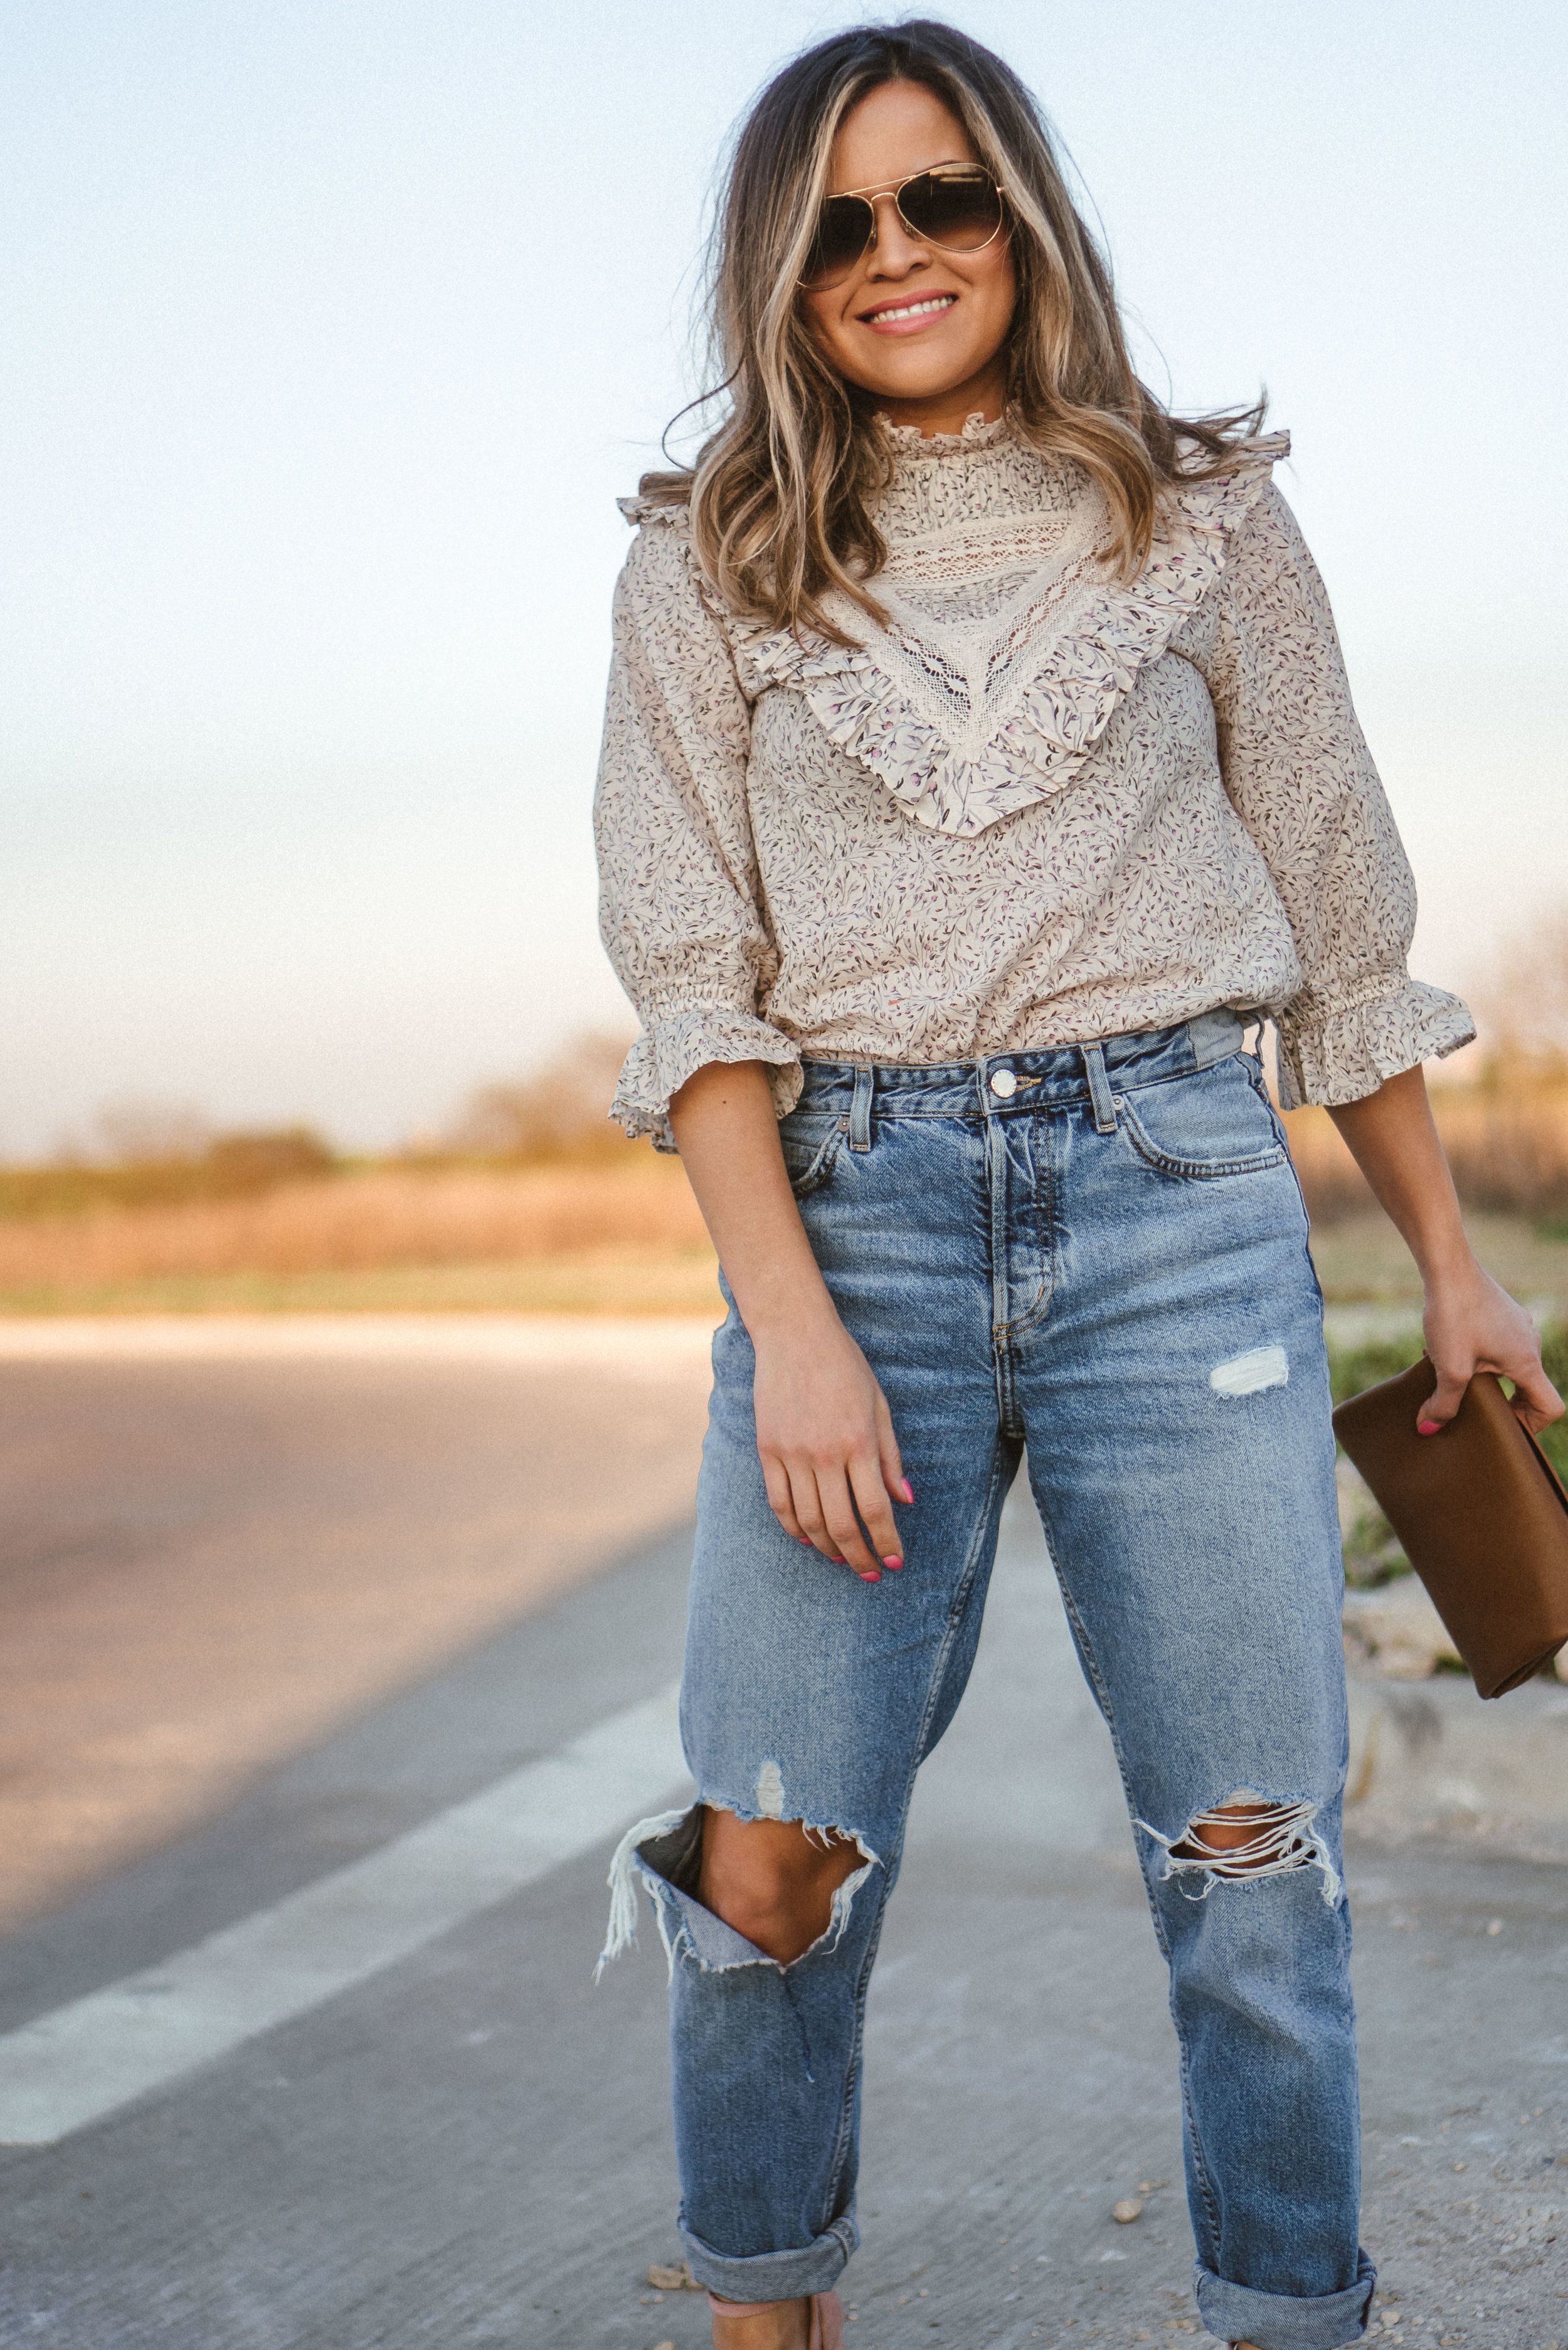 I just love this top and jeans combo.